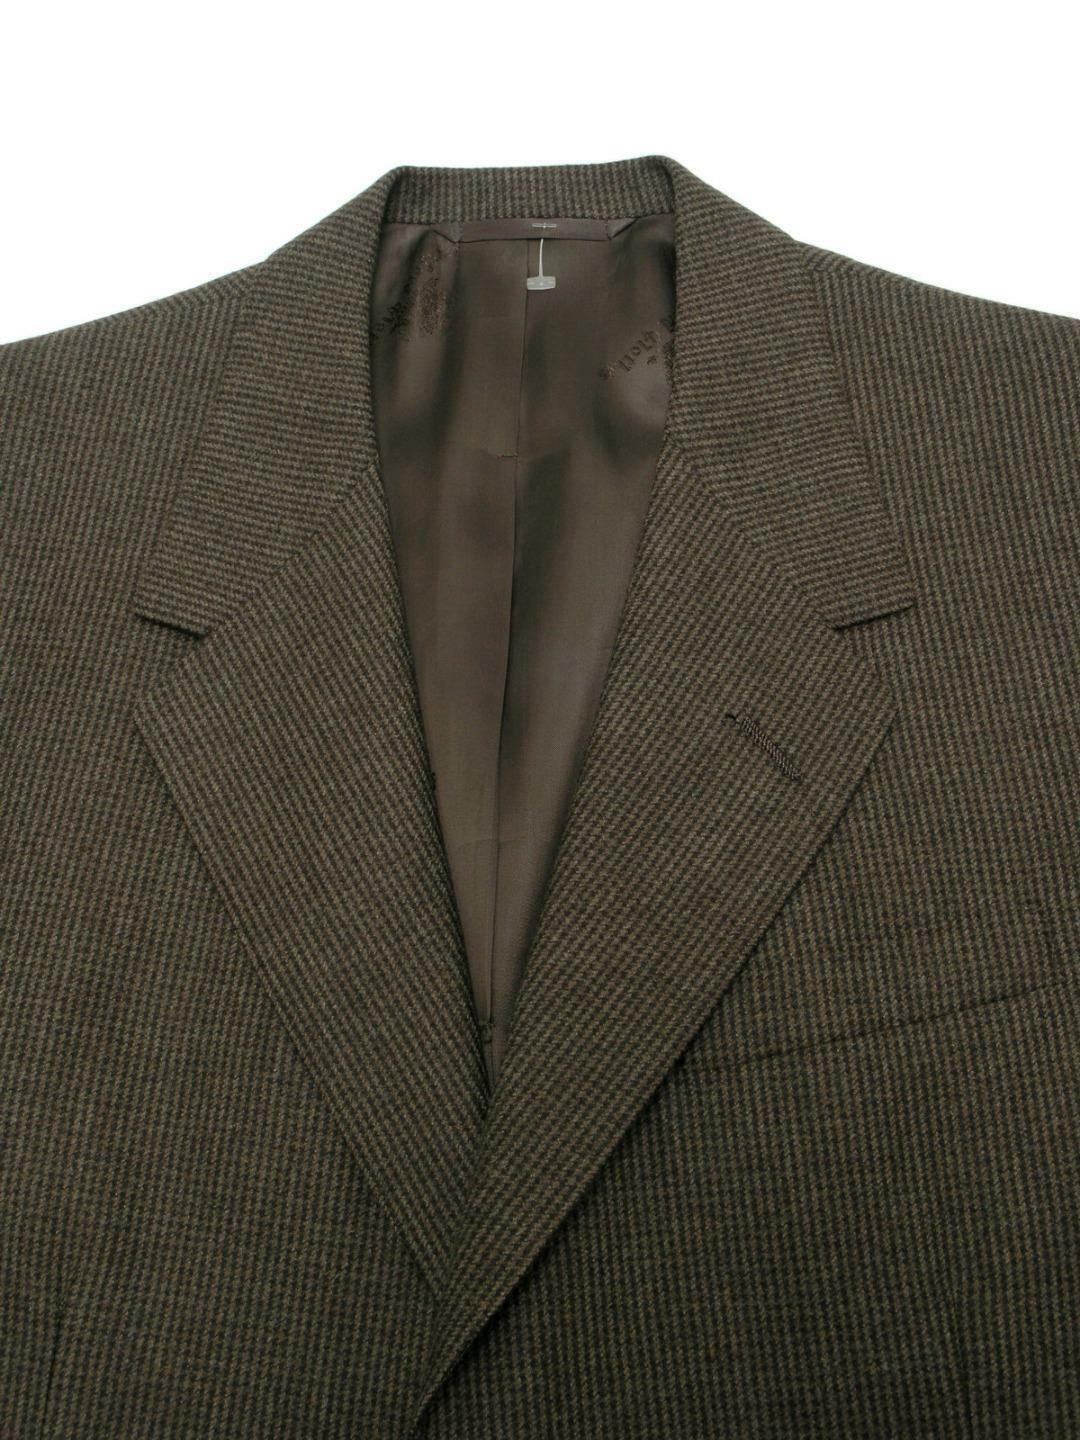 OXXFORD Suit Cashmere Wool Masterworks Super 150's Bespoke 42 44R 34Wx30.25L